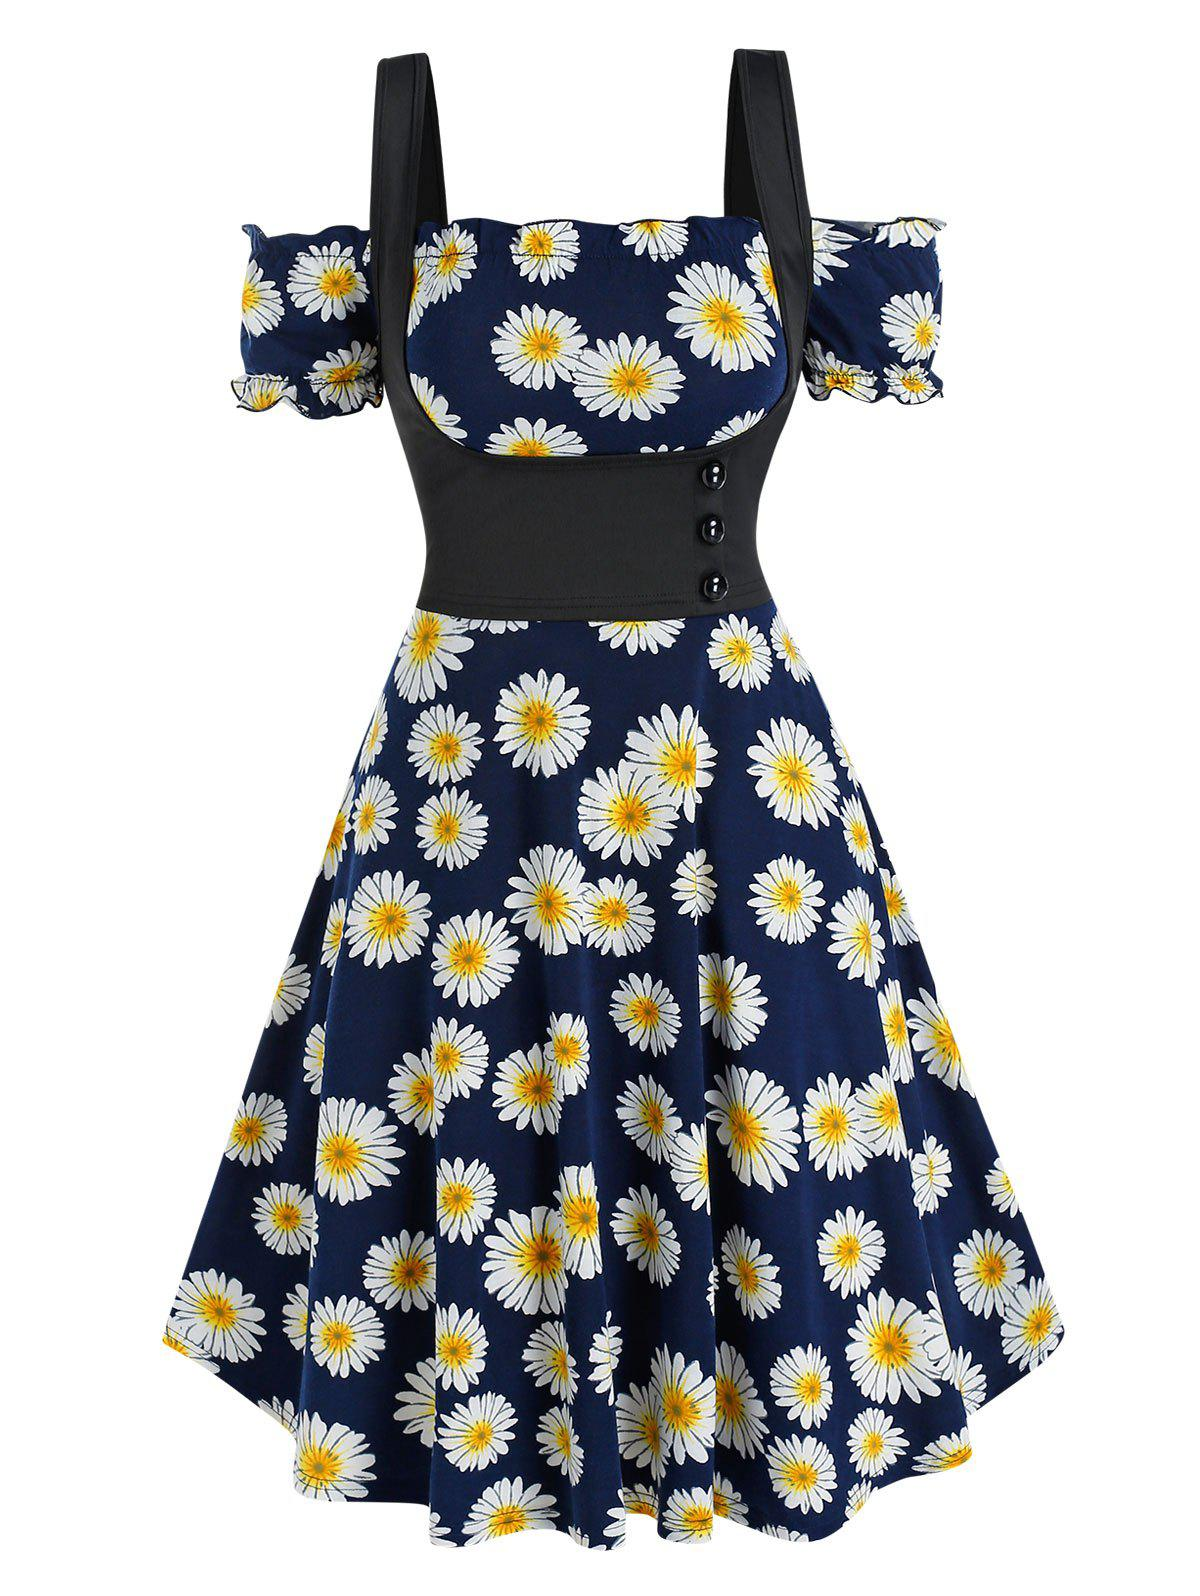 Daisy Print Off The Shoulder Dress and Top Twinset - DEEP BLUE 2XL